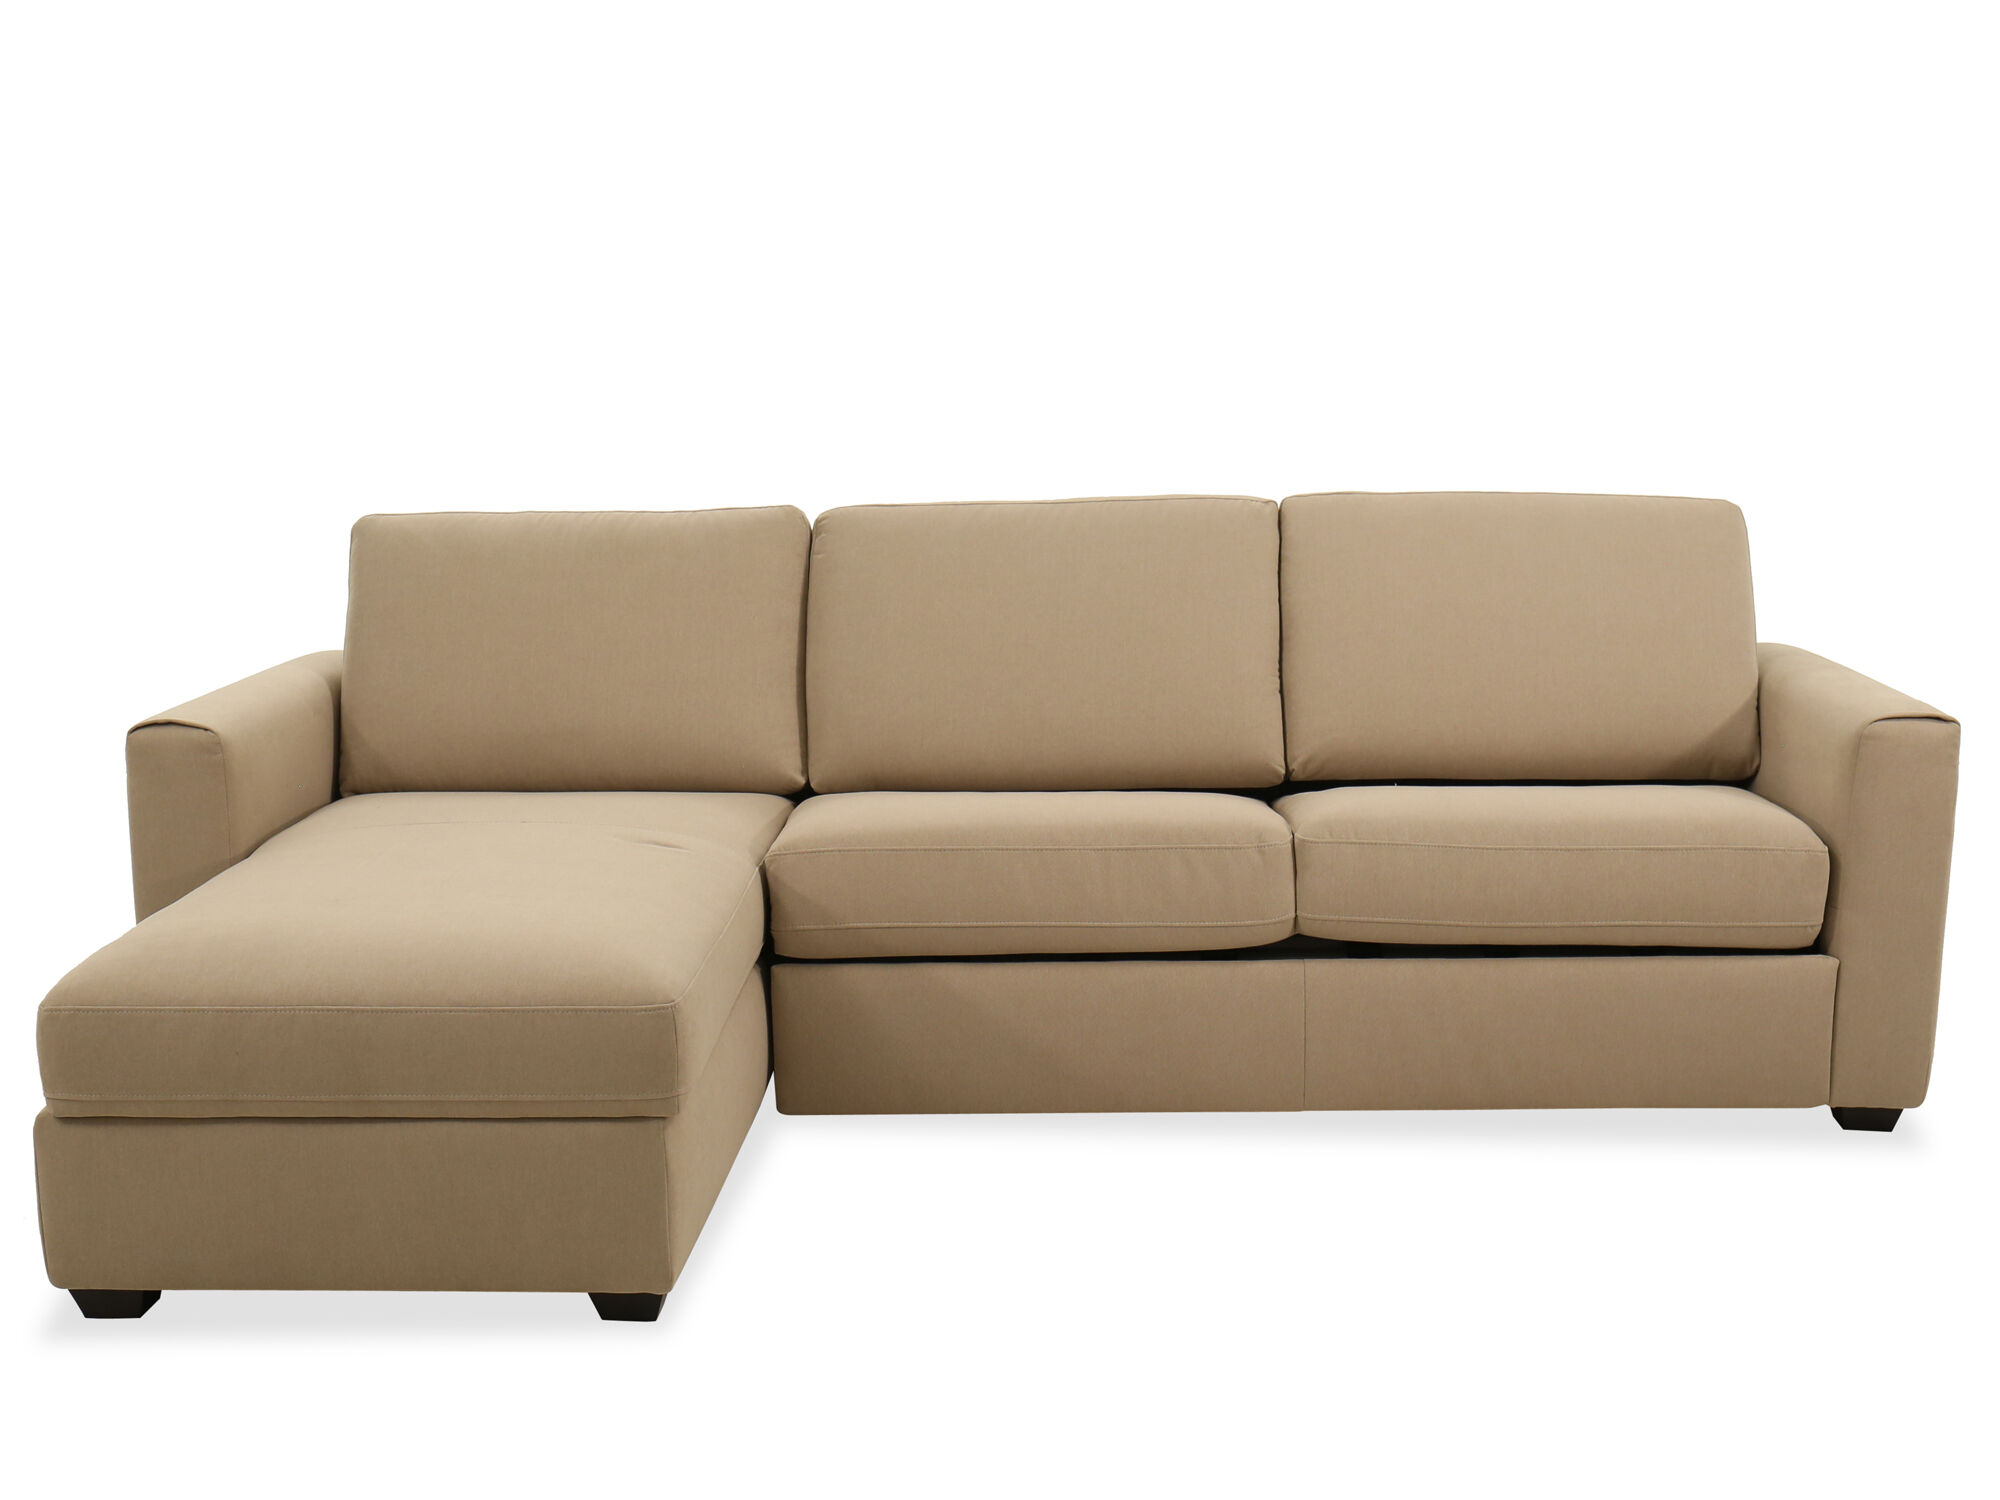 107u0026quot; Casual Storage Sleeper Sectional ...